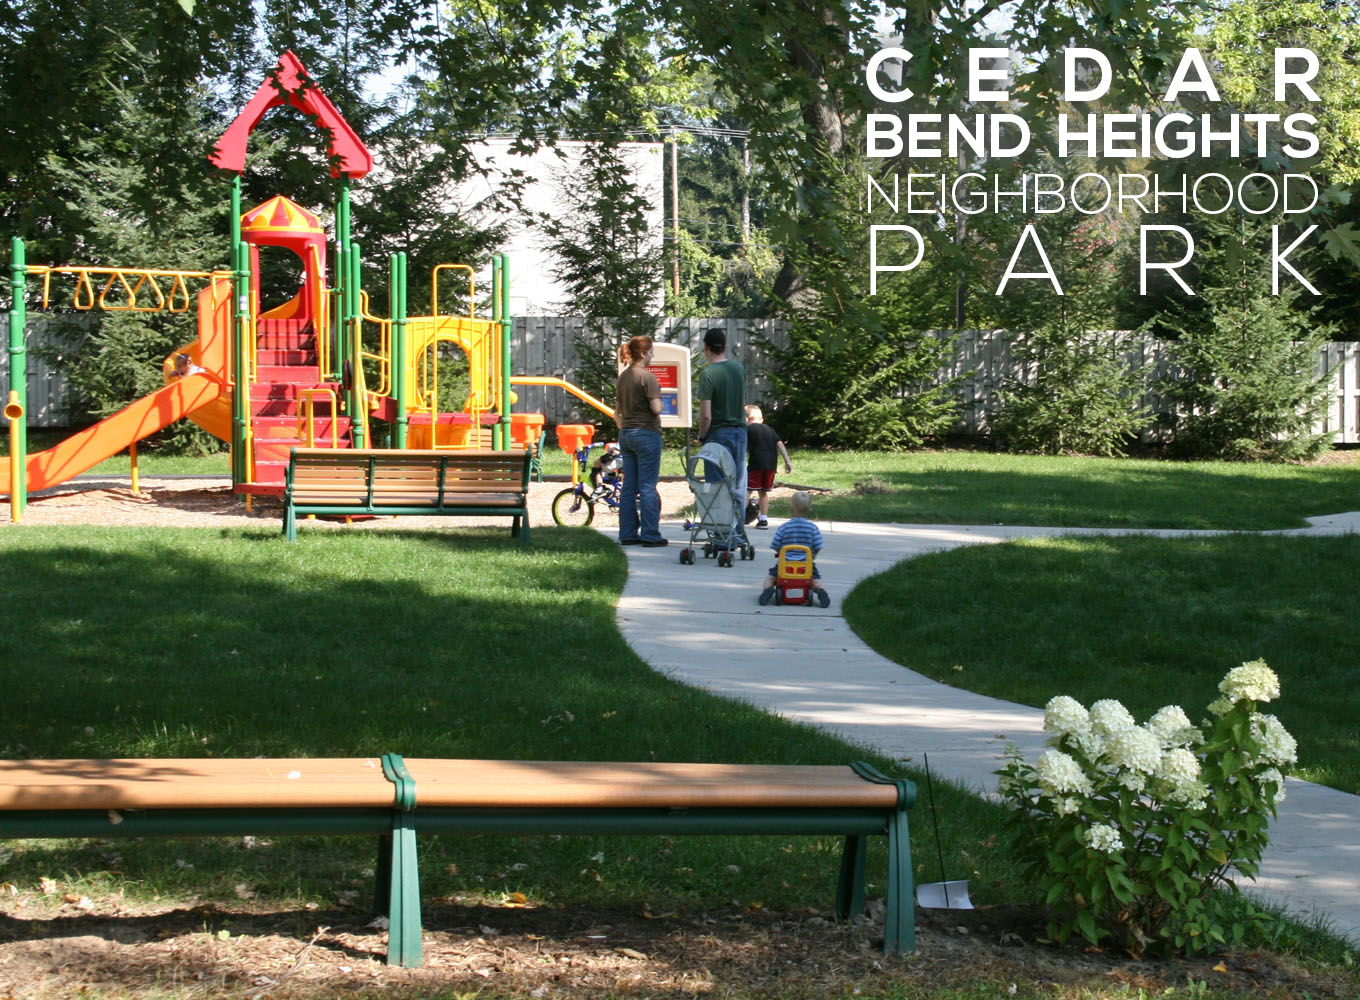 Cedar Bend Heights Neighborhood Park